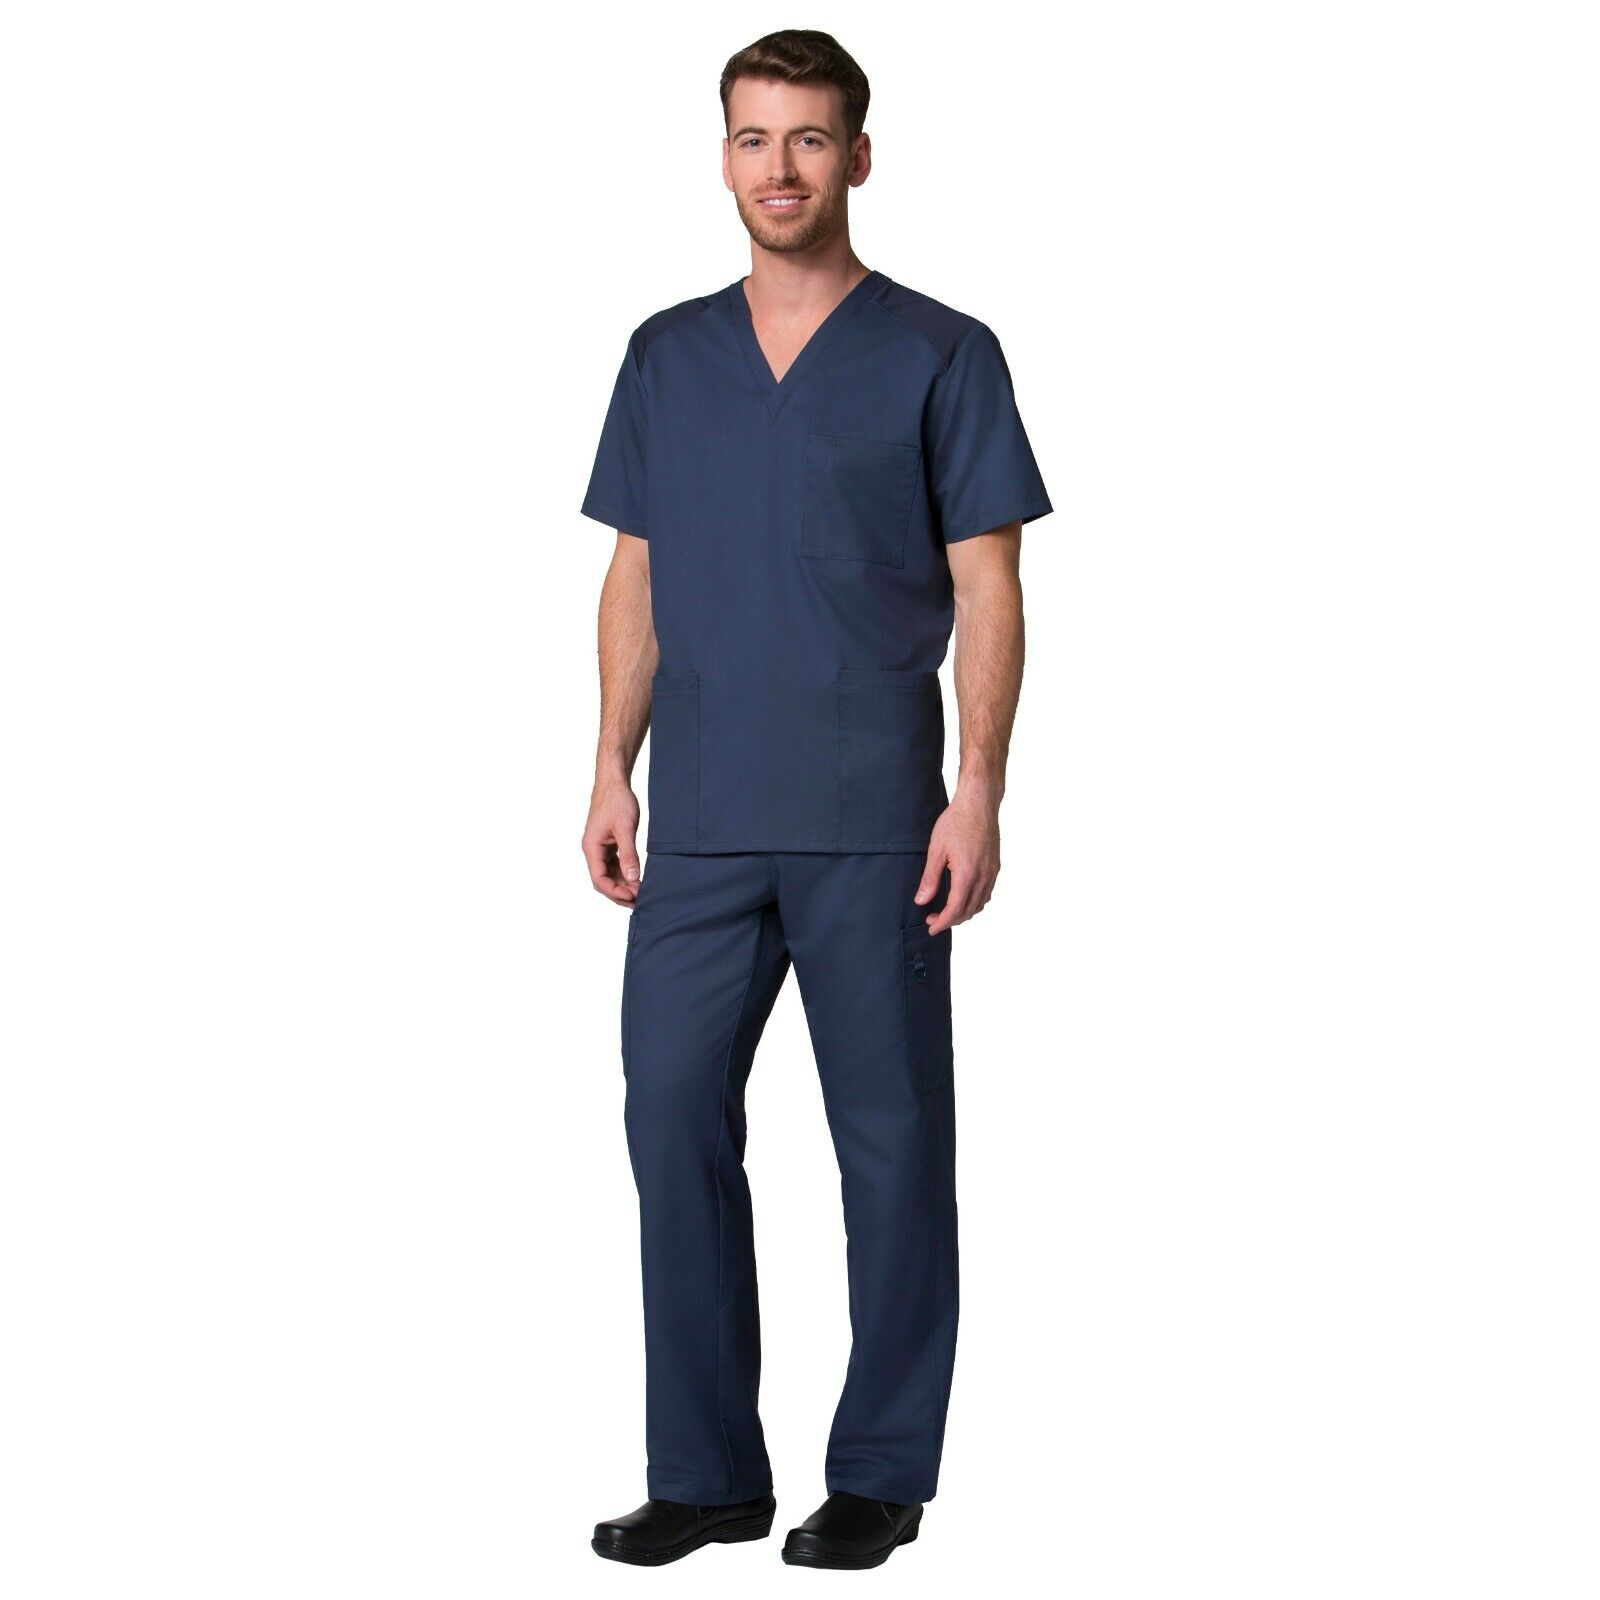 Maevn Scrubs Set EON Men/'s One Pocket V-Neck Top /& Elastic Cargo Pants 5208//8308